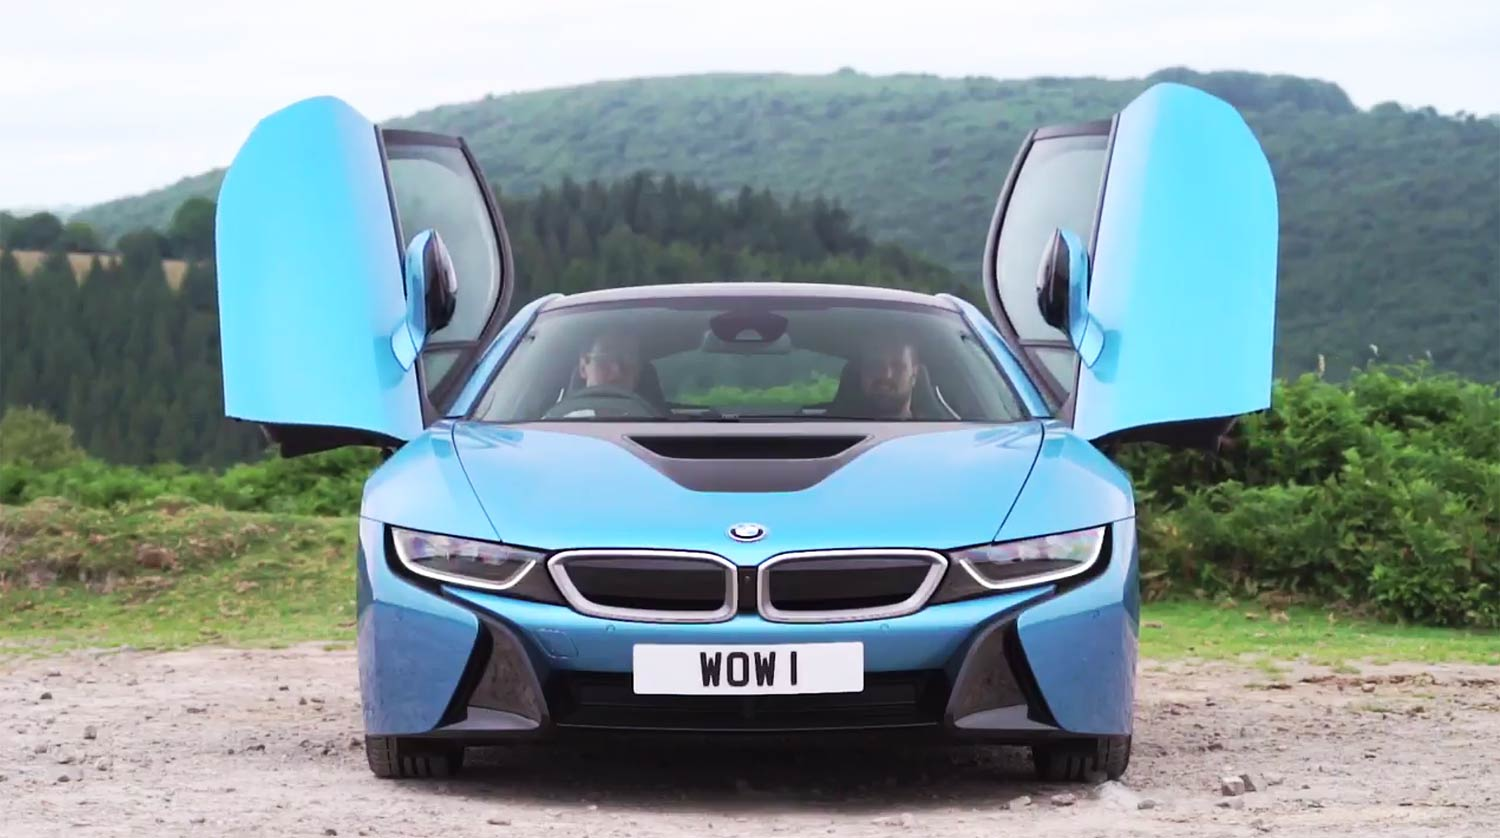 A thousand wows an hour - and 134 miles per gallon -  in the super-sexy hybrid BMW i8 23